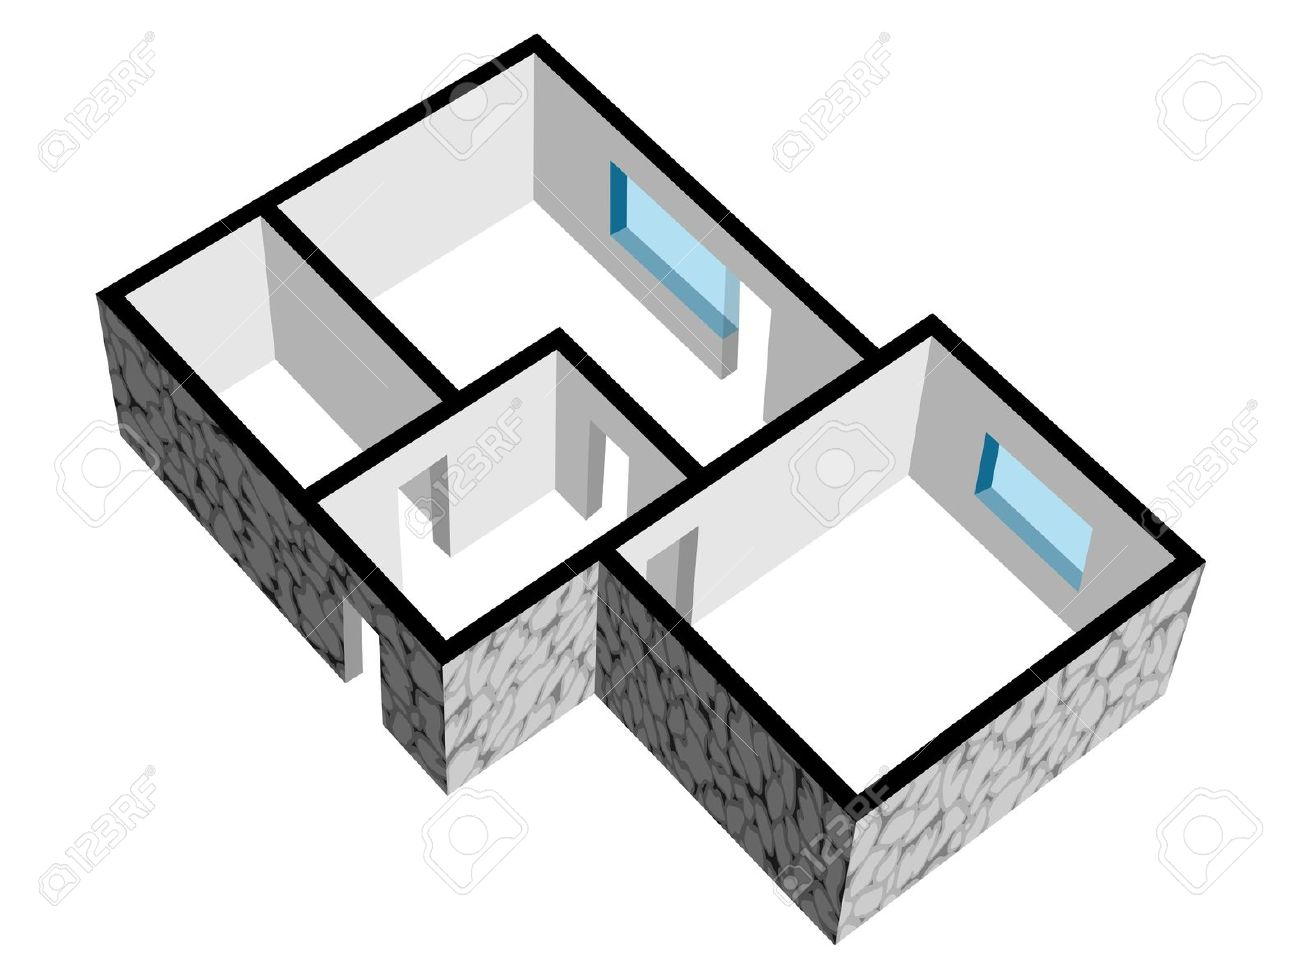 Room layout clipart.